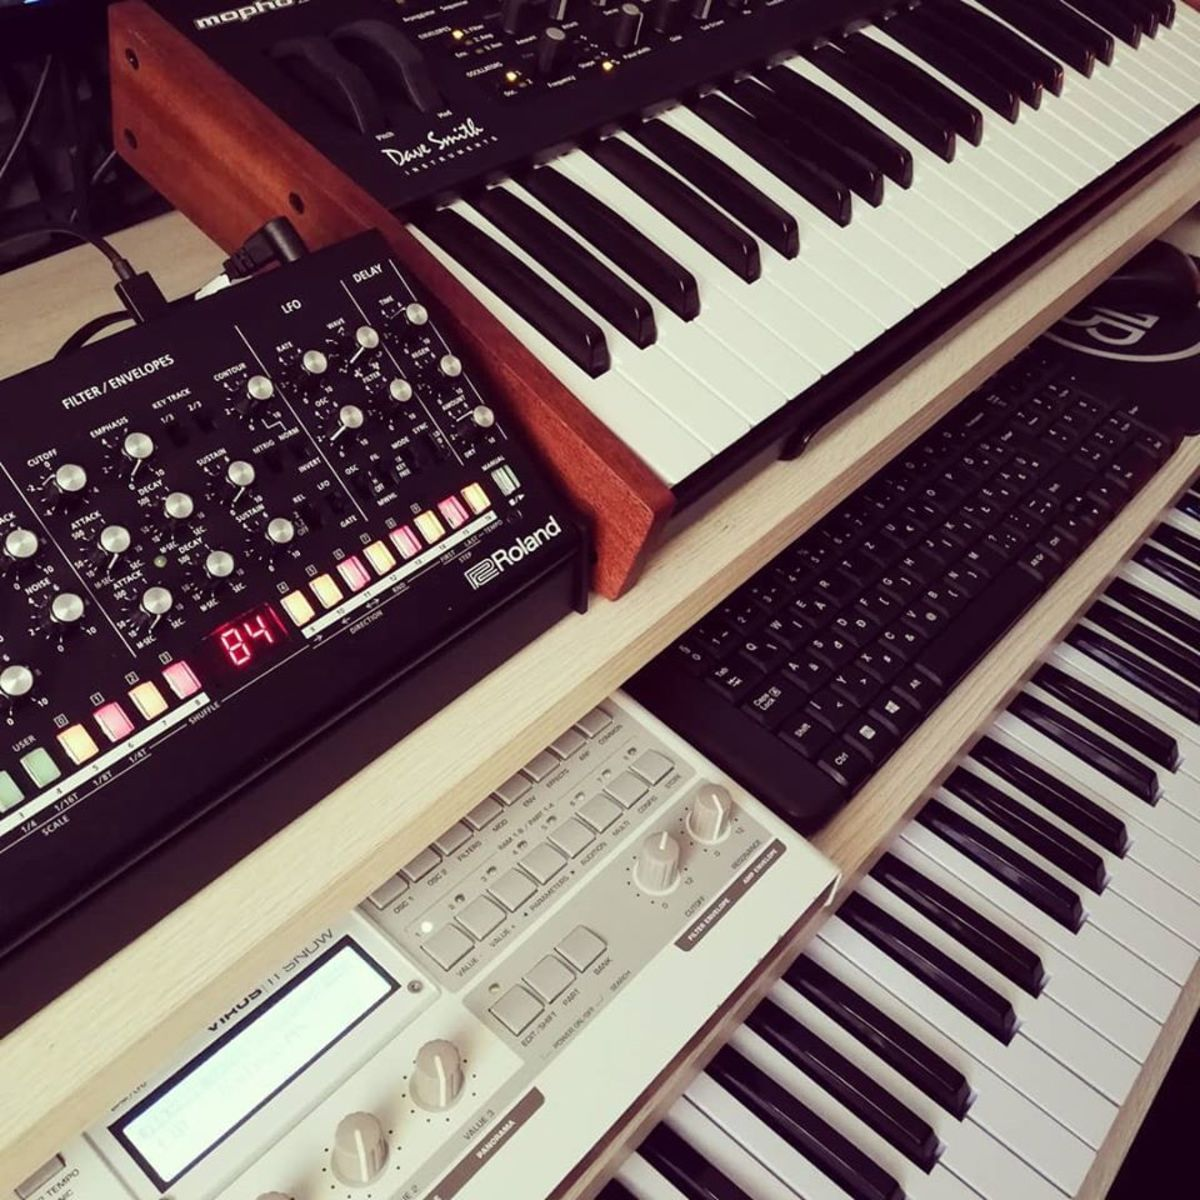 Photo of Dave Smith Instruments Mopho x4 Synthesizer Keyboard and more gear